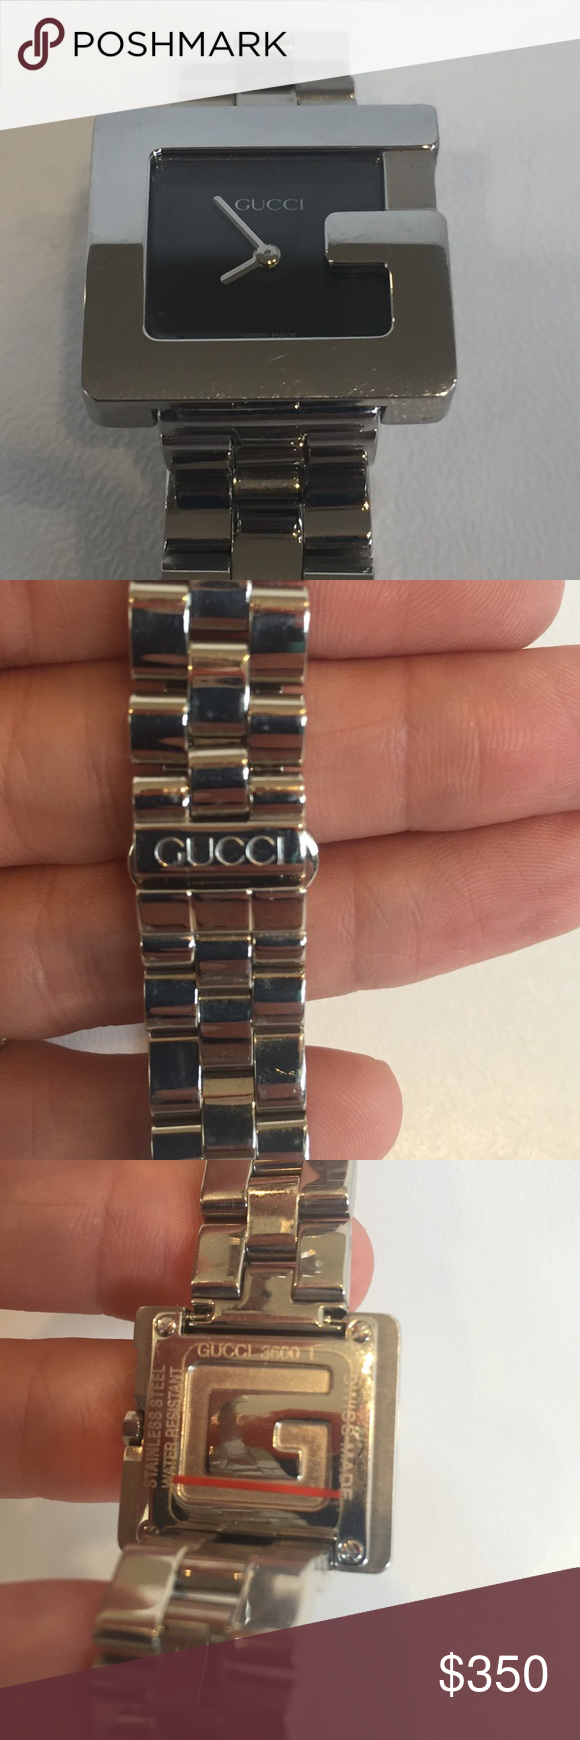 ca07a178d3e Gucci women s 3600 L G-watch Some slight scratching. Needs battery. Gucci  Accessories Watches